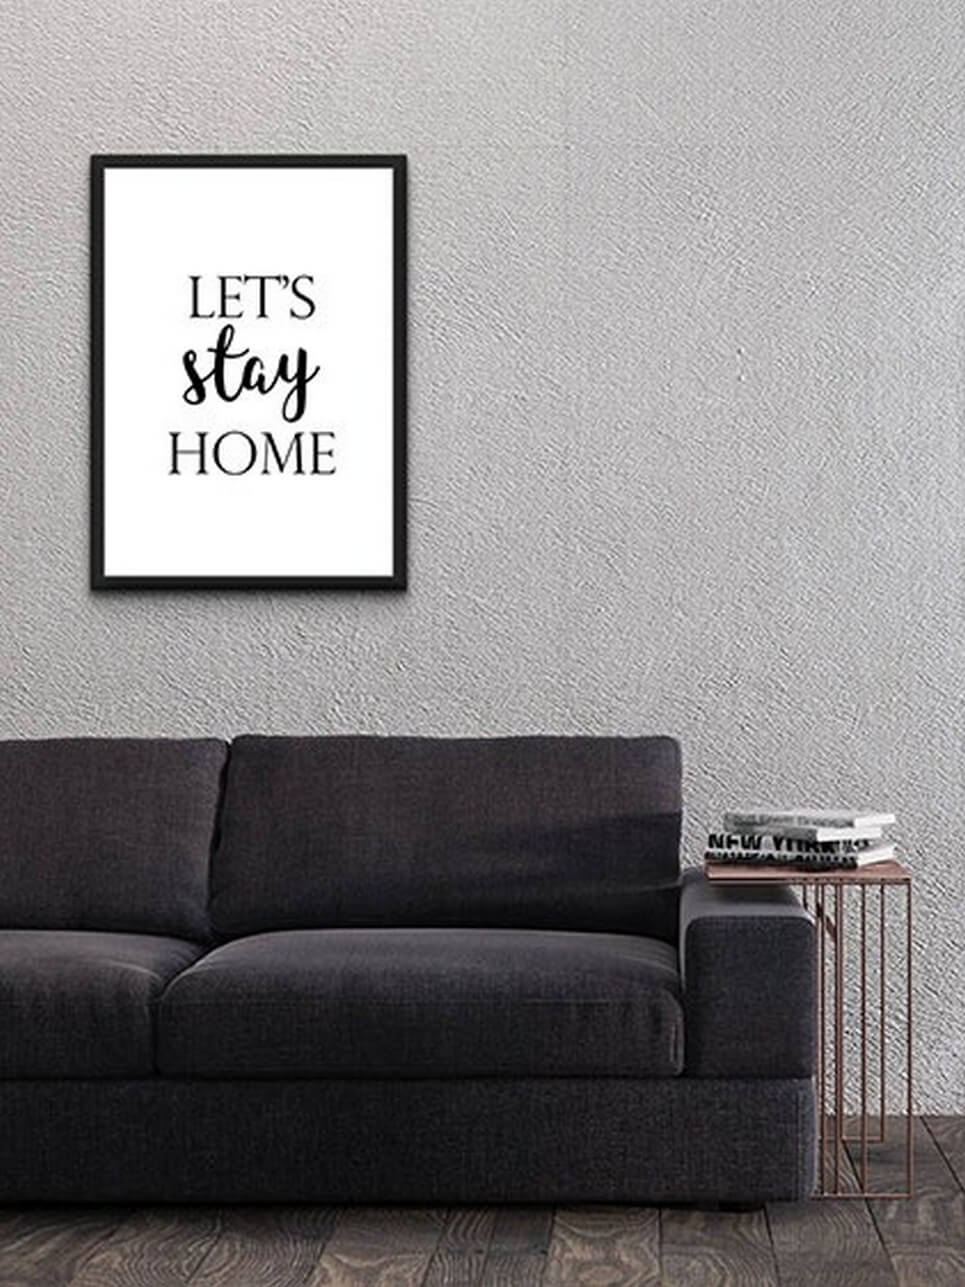 Home Wall Poster U2013 Letu0027s Stay Home